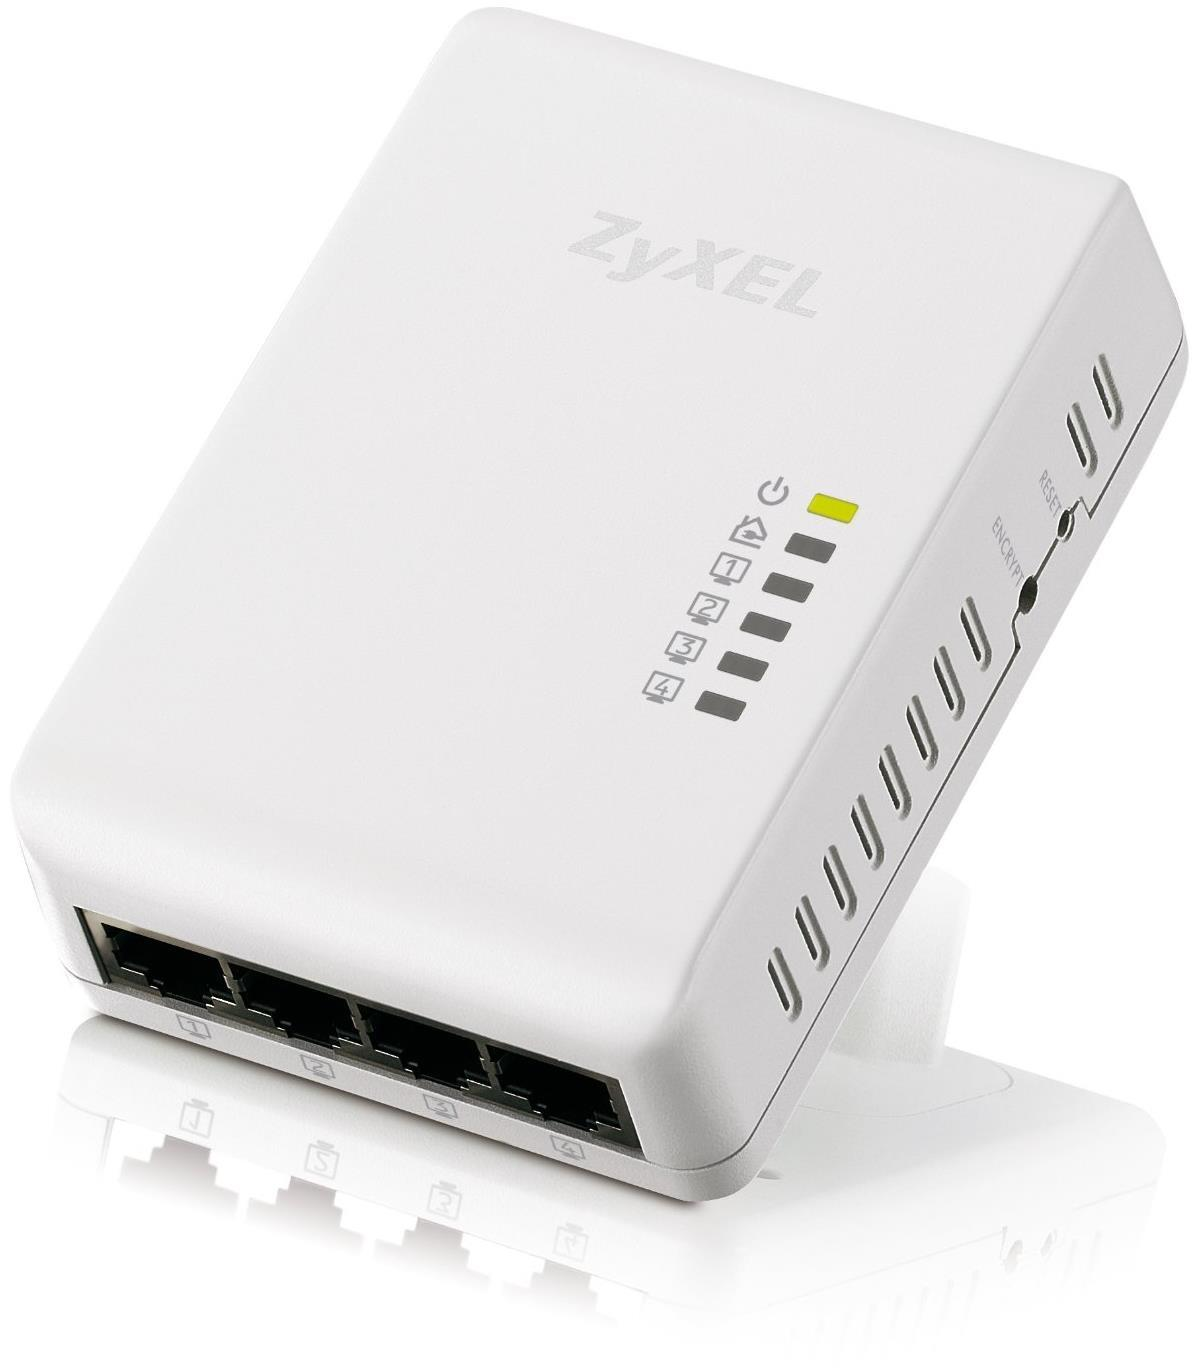 Zyxel PLA4225 500Mbps Powerline Mains 4-Port Gigabit RJ45 Switch